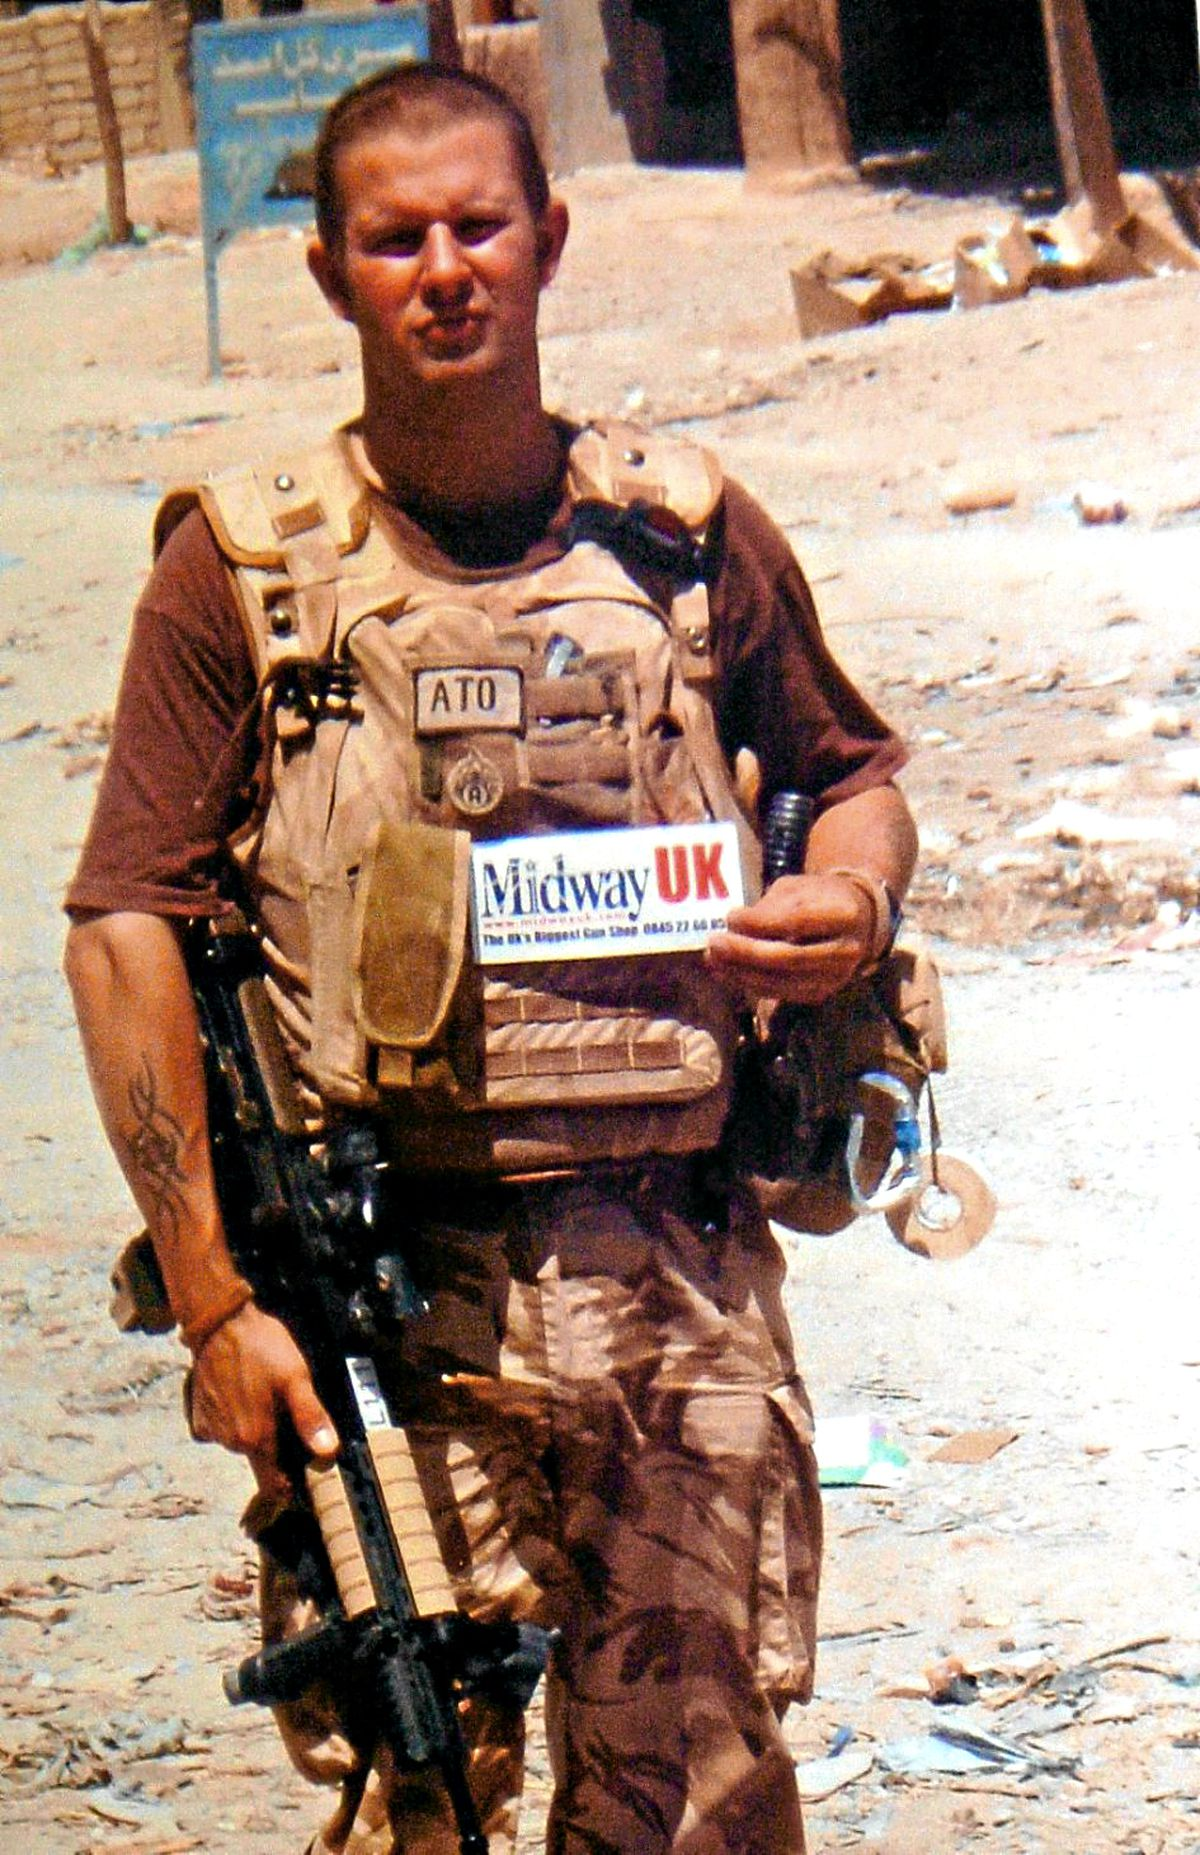 Staff Sergeant Kim Hughes on duty in Afghanistan, where he diffused bombs